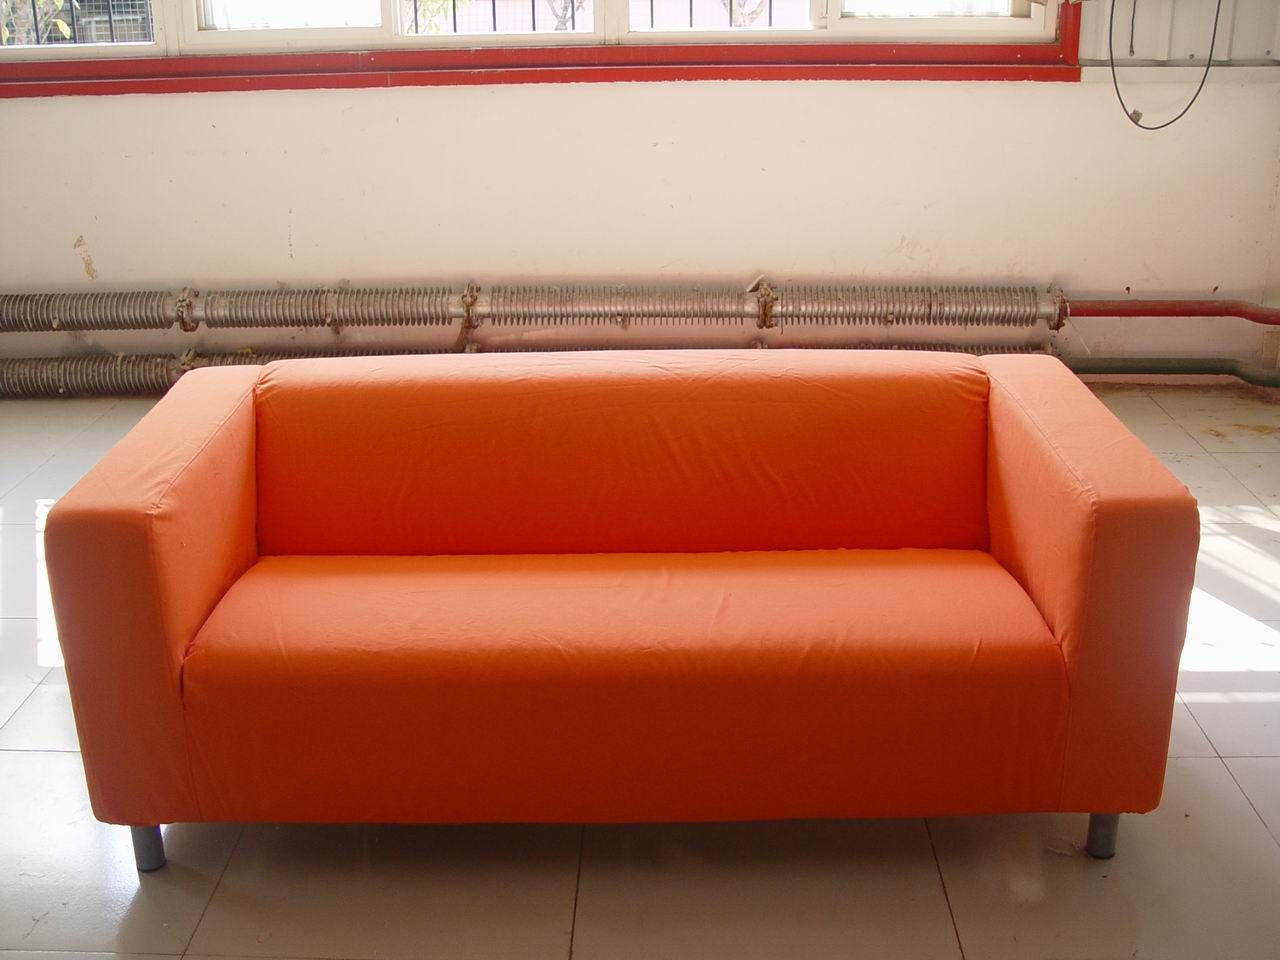 The Ikea Couch Covers Klippan Are Really Important To Creating A Luxurious  Feel In Family Room, A Family Room, Or Man Cave.